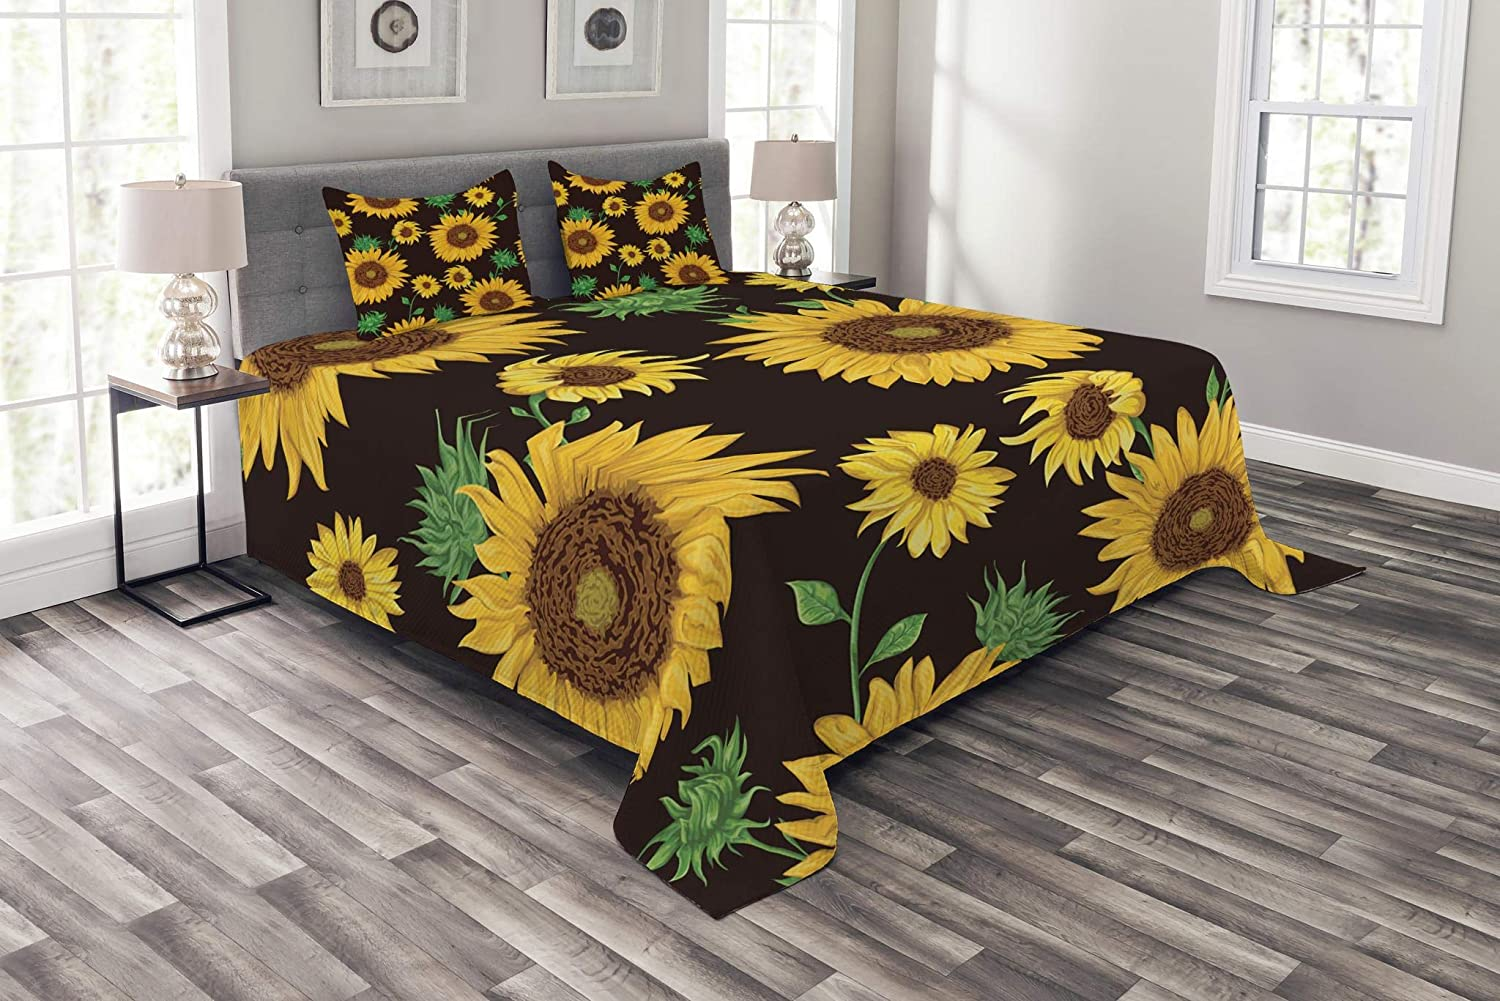 Lunarable Sunflower Bedspread, Earth Tones Floral Buds Leaves Spring Nature Vintage Pattern, Decorative Quilted 3 Piece Coverlet Set with 2 Pillow Shams, Queen Size, Yellow Green